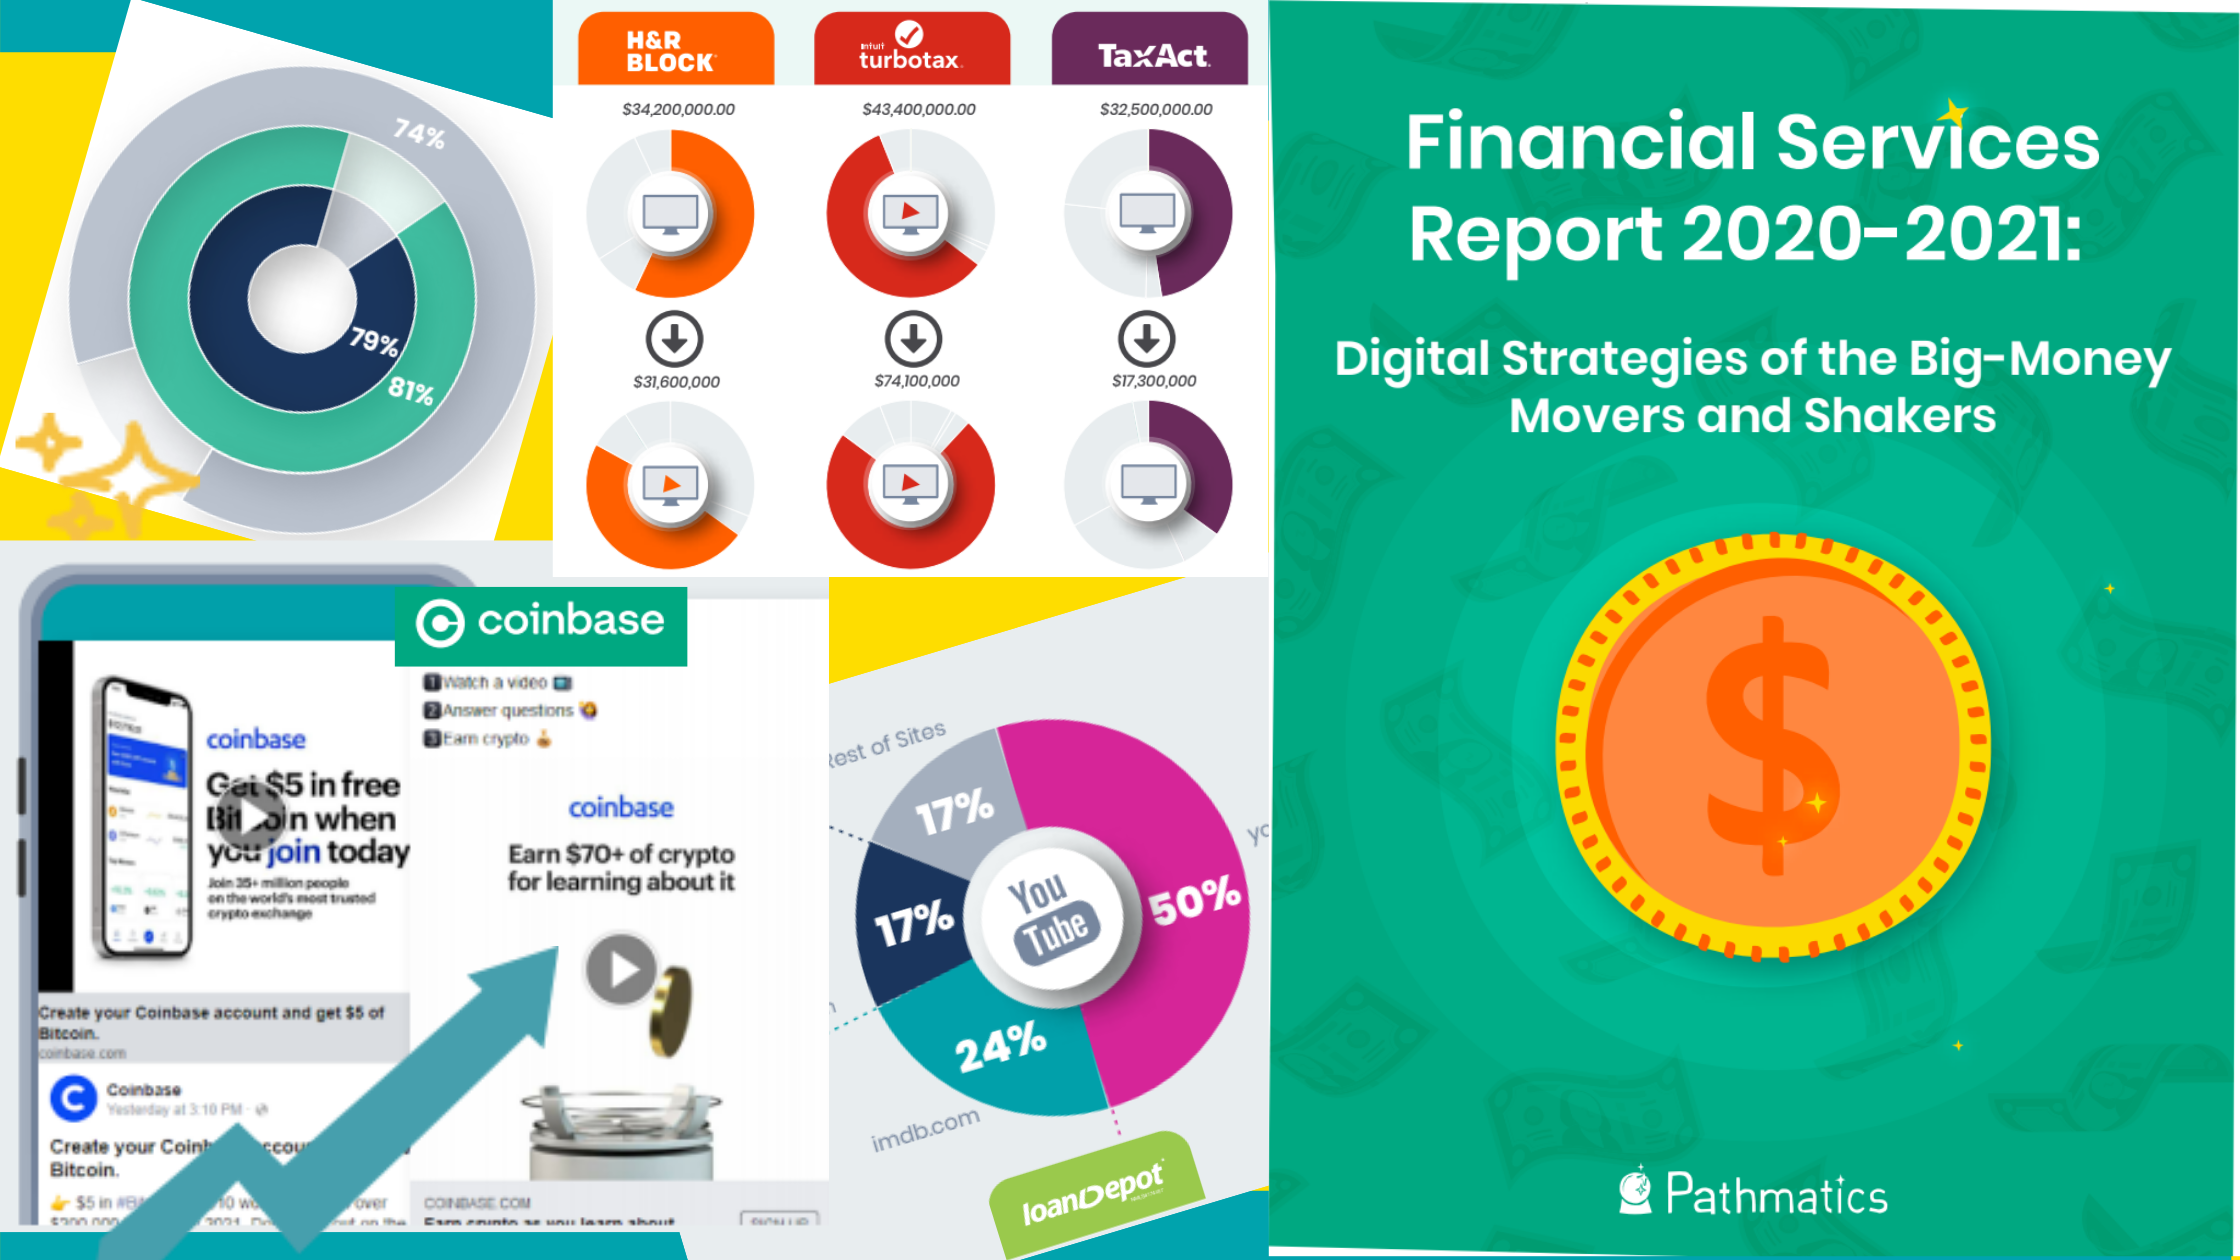 Finserv Report: Digital Strategies of the Big-Money Movers and Shakers